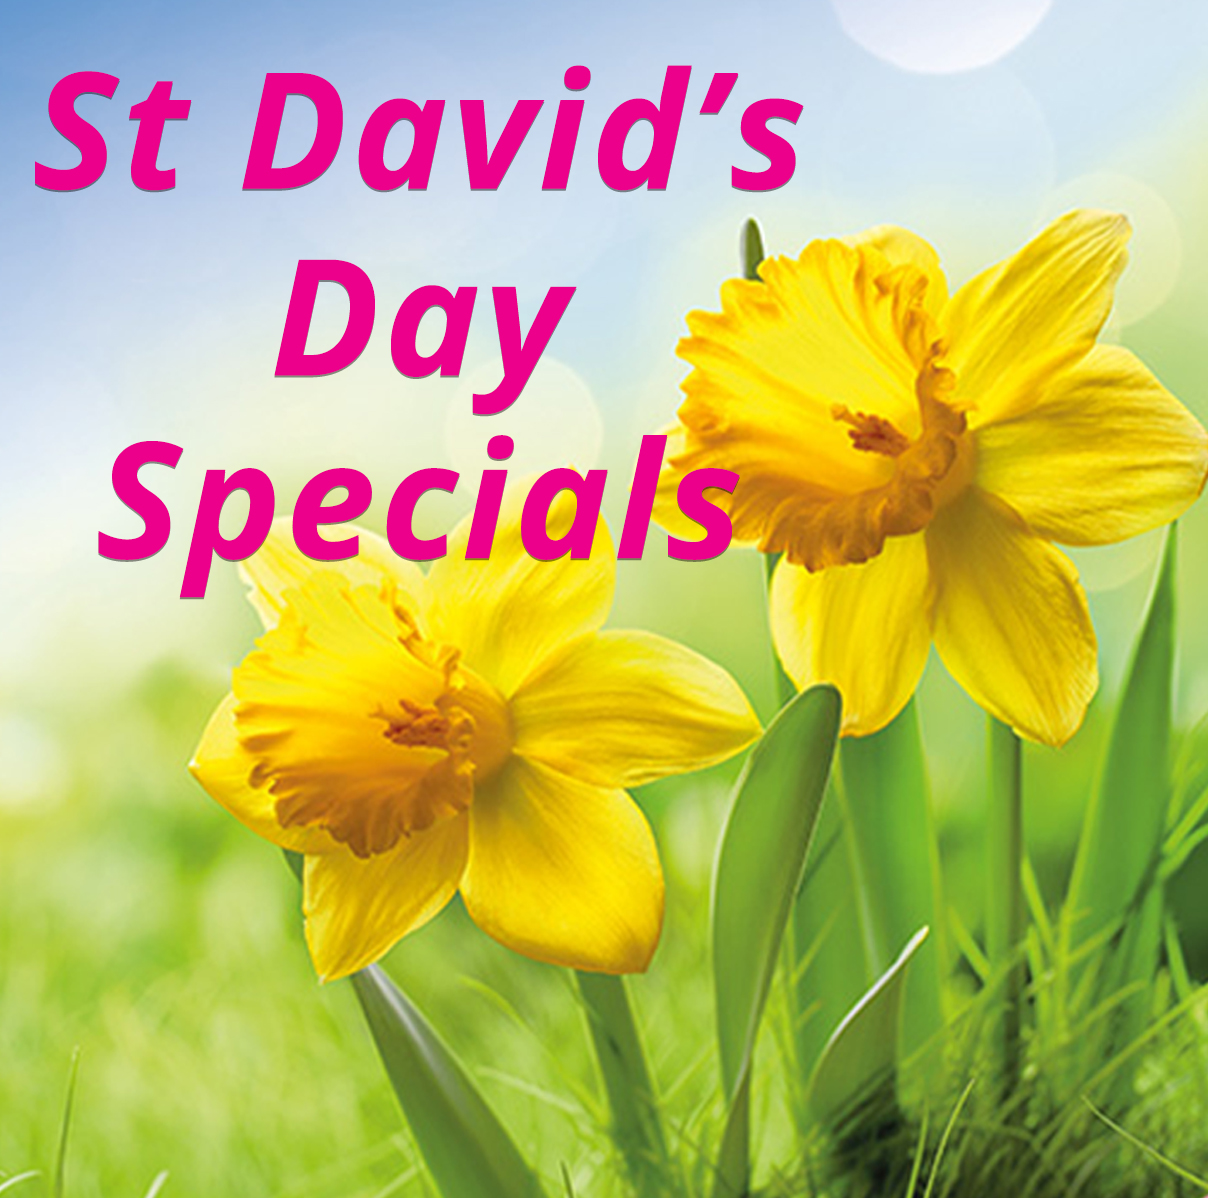 St David's Day Special